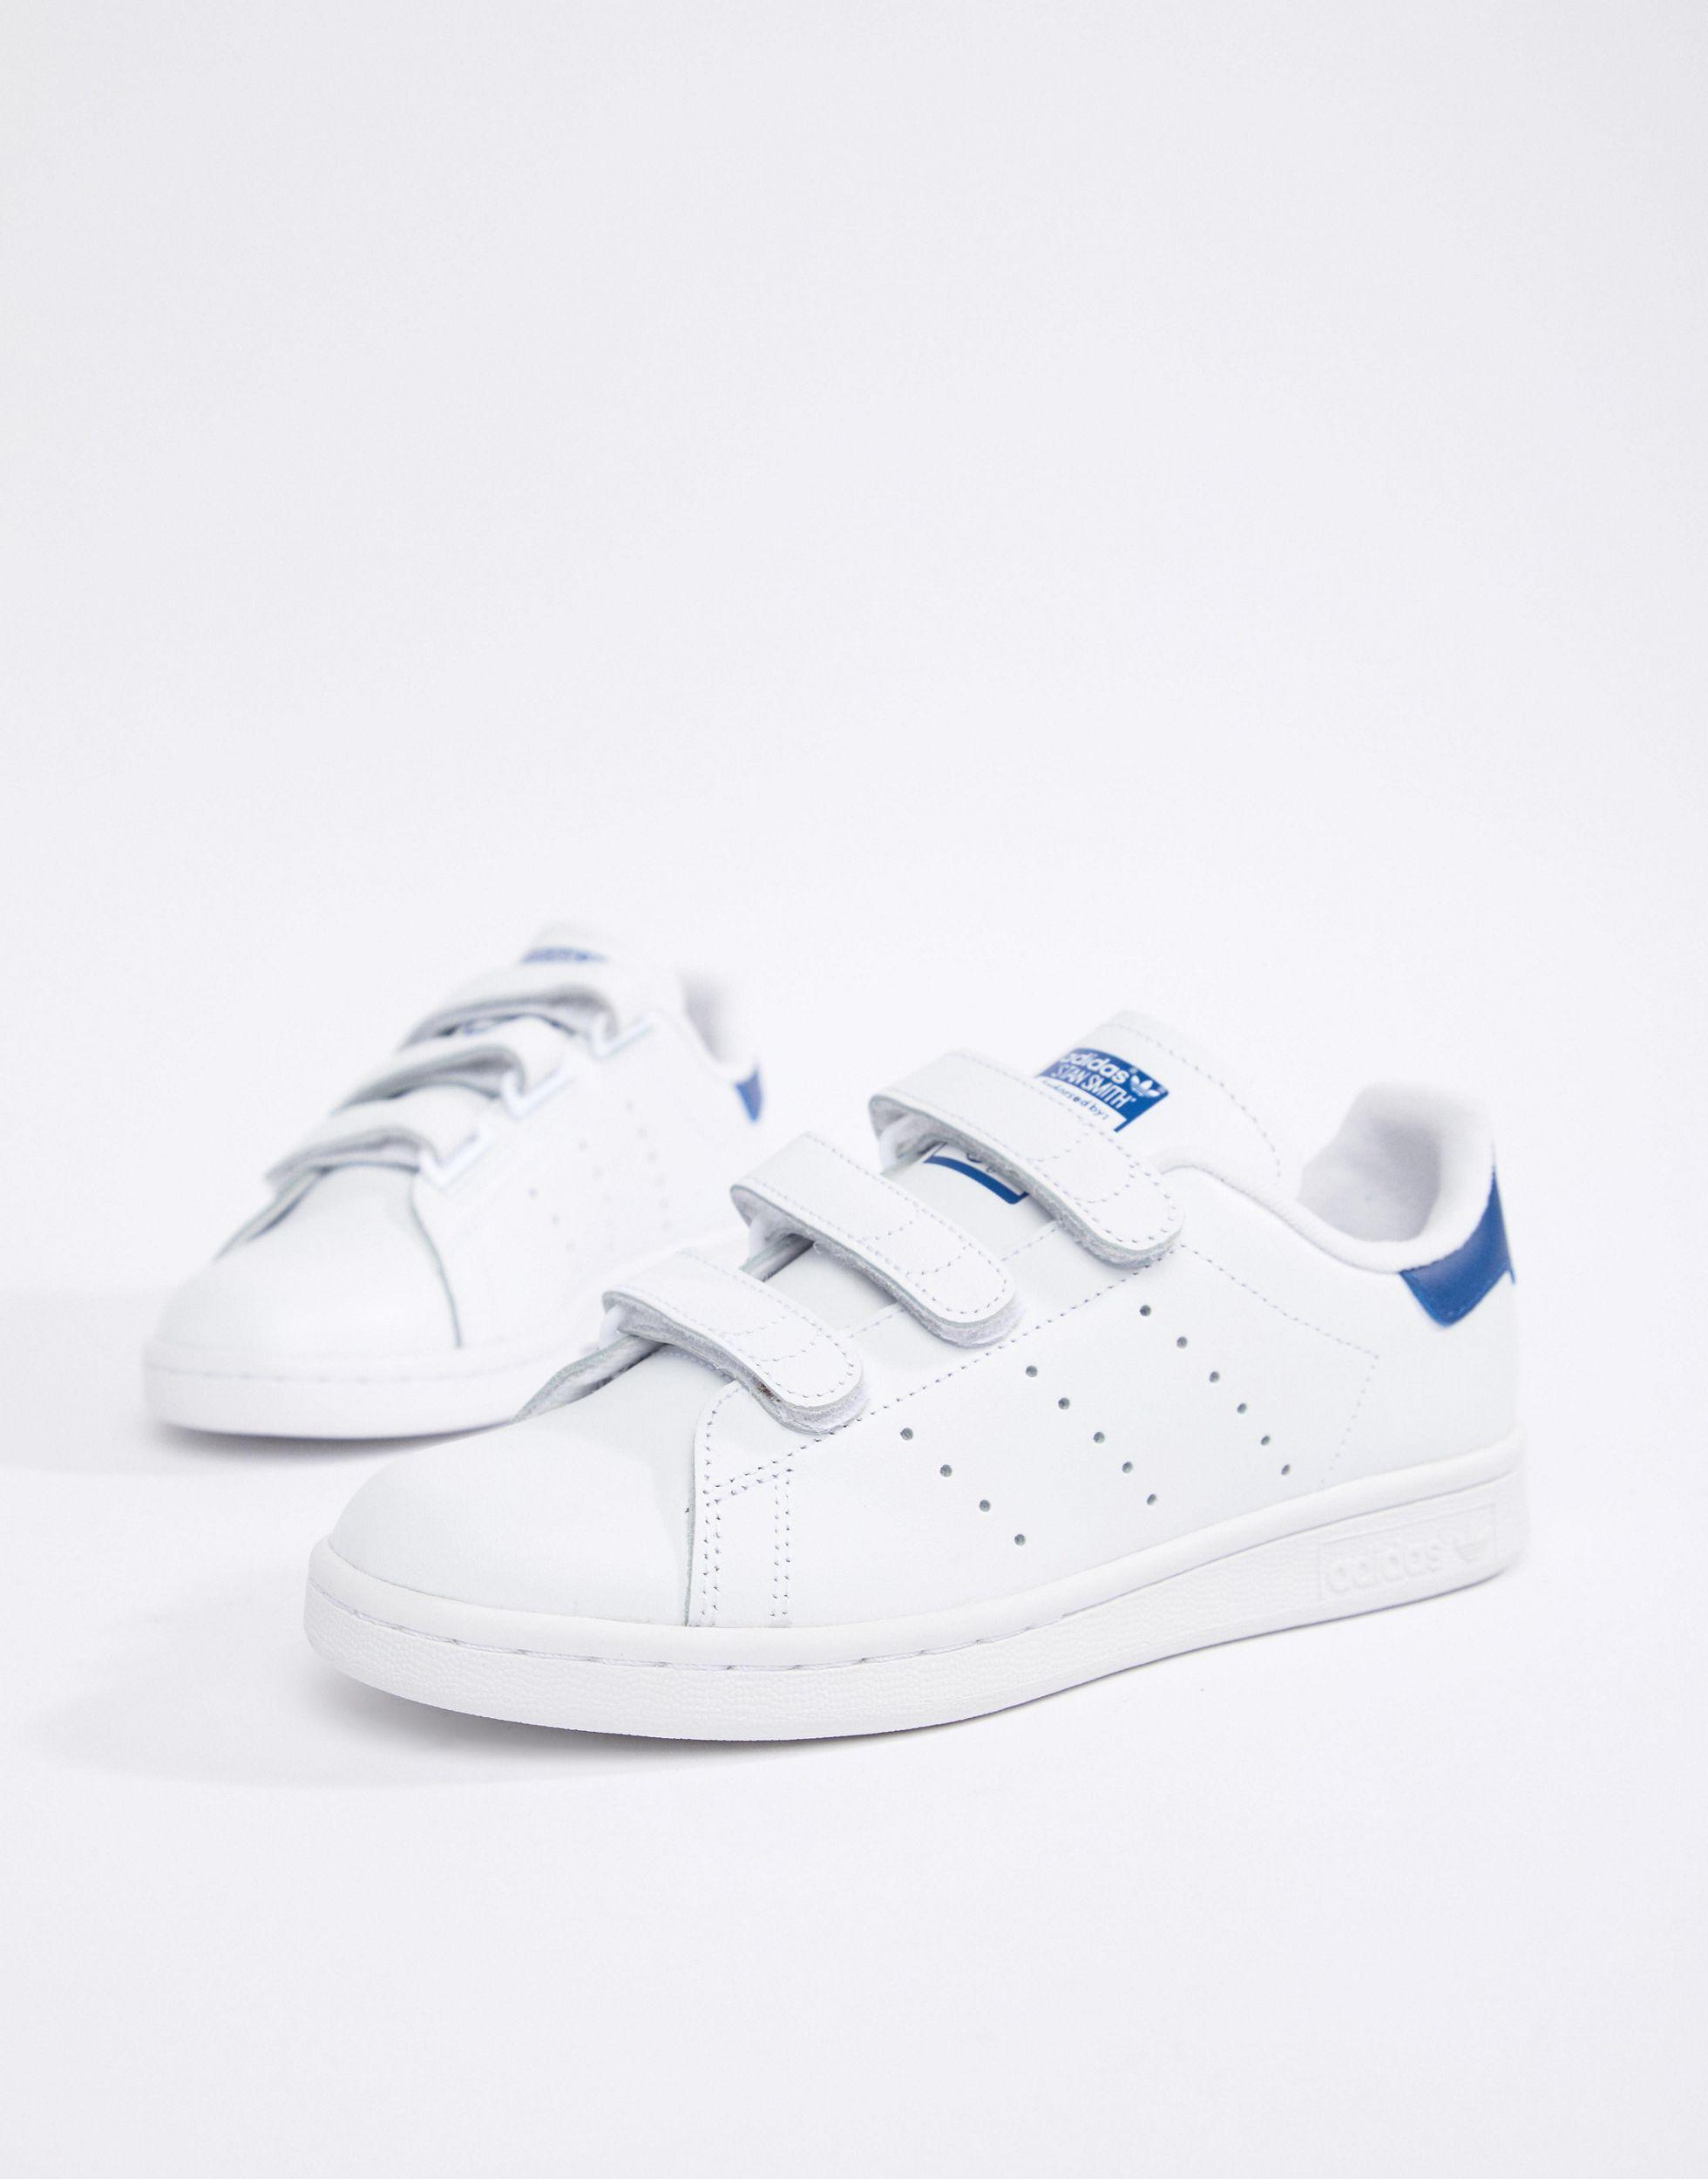 adidas Originals Stan Smith Velcro Trainers in White - Lyst